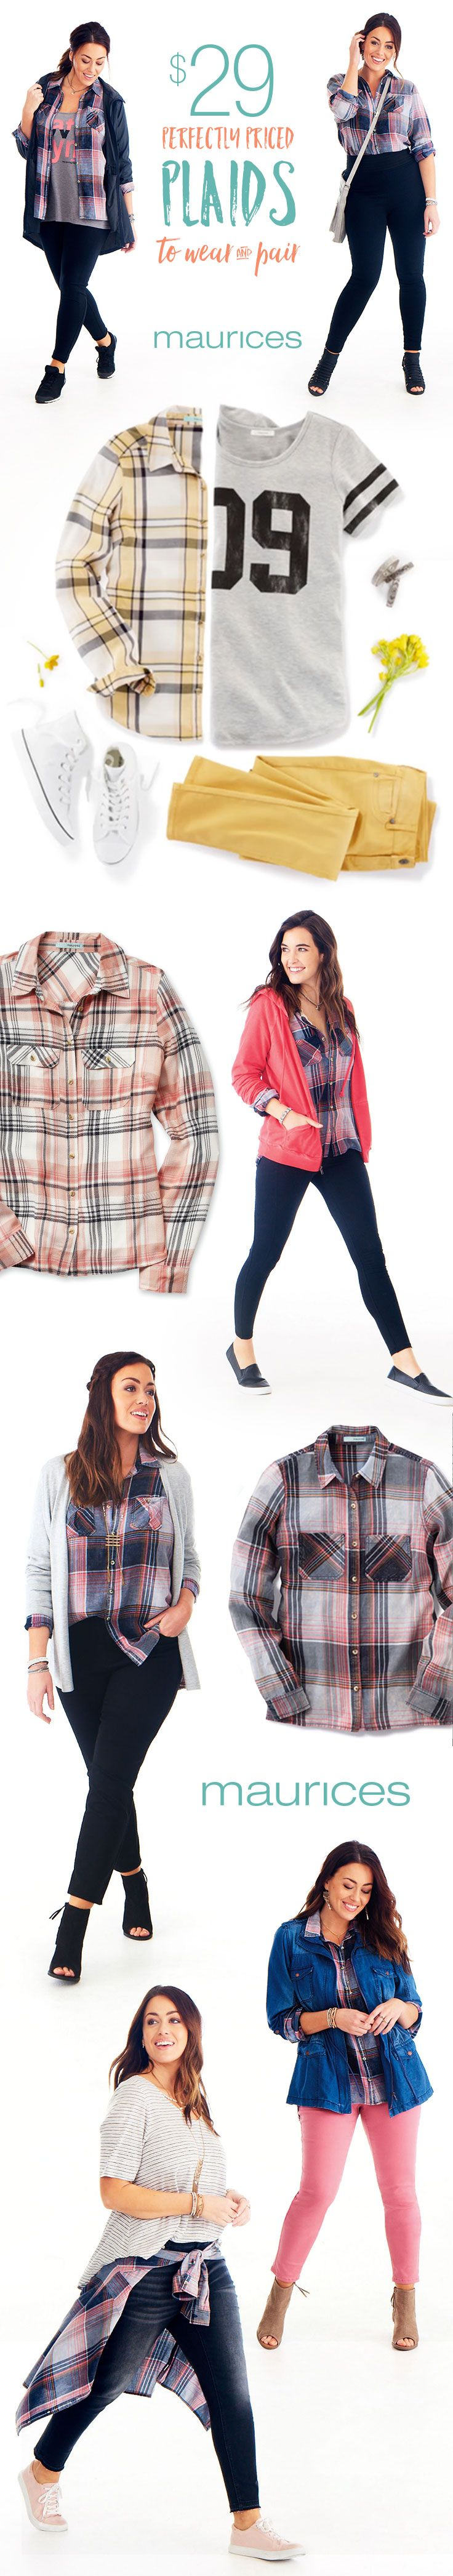 Get playful with endless ways to wear & pair plaids starting at $29. Plus, say hello to FREE shipping when you pick up in store or on orders $50 or more.